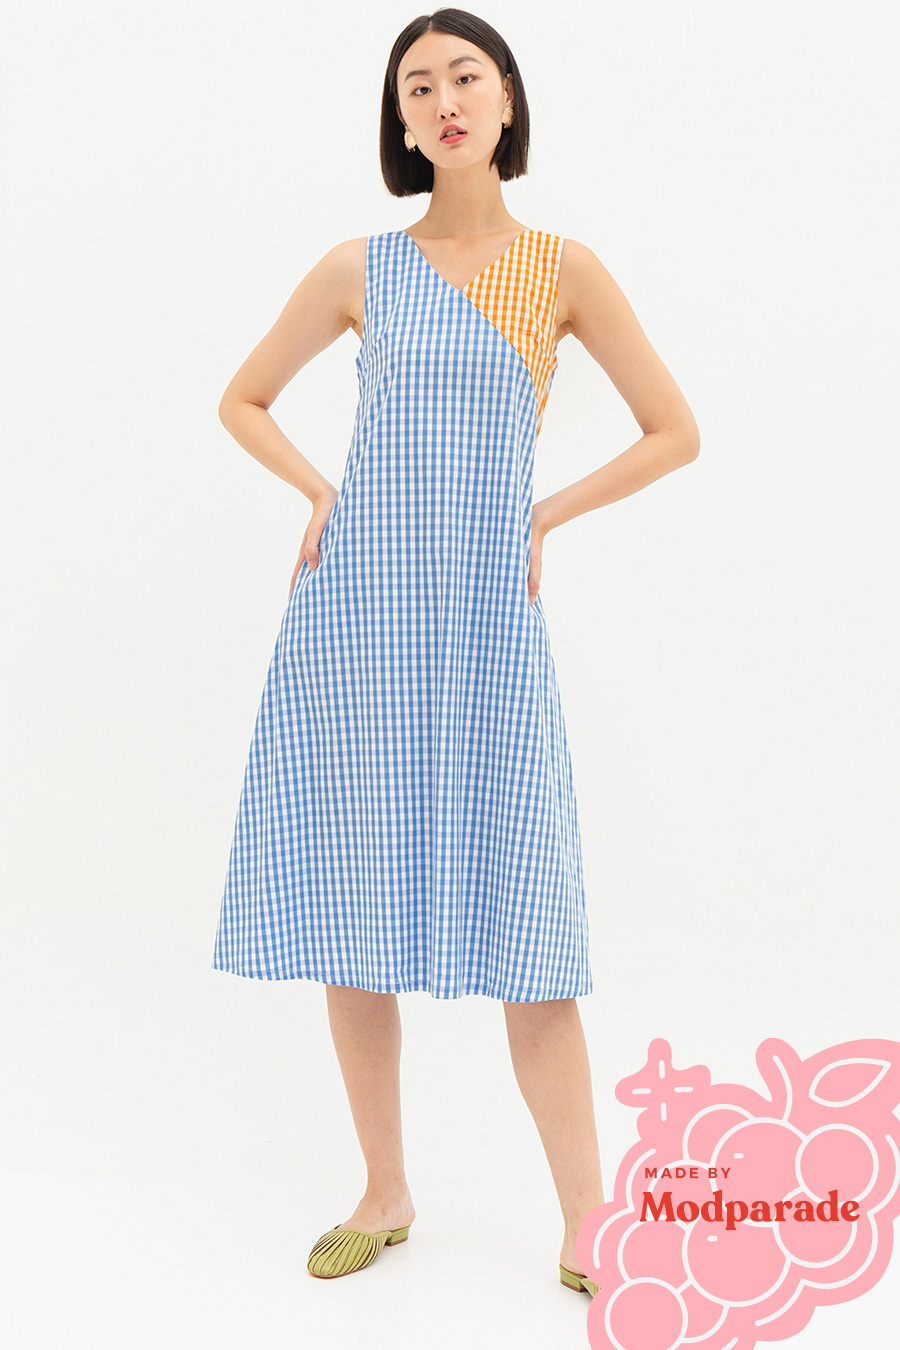 *SALE* MIRIAM DRESS - GINGHAM BLOCK [BY MODPARADE]